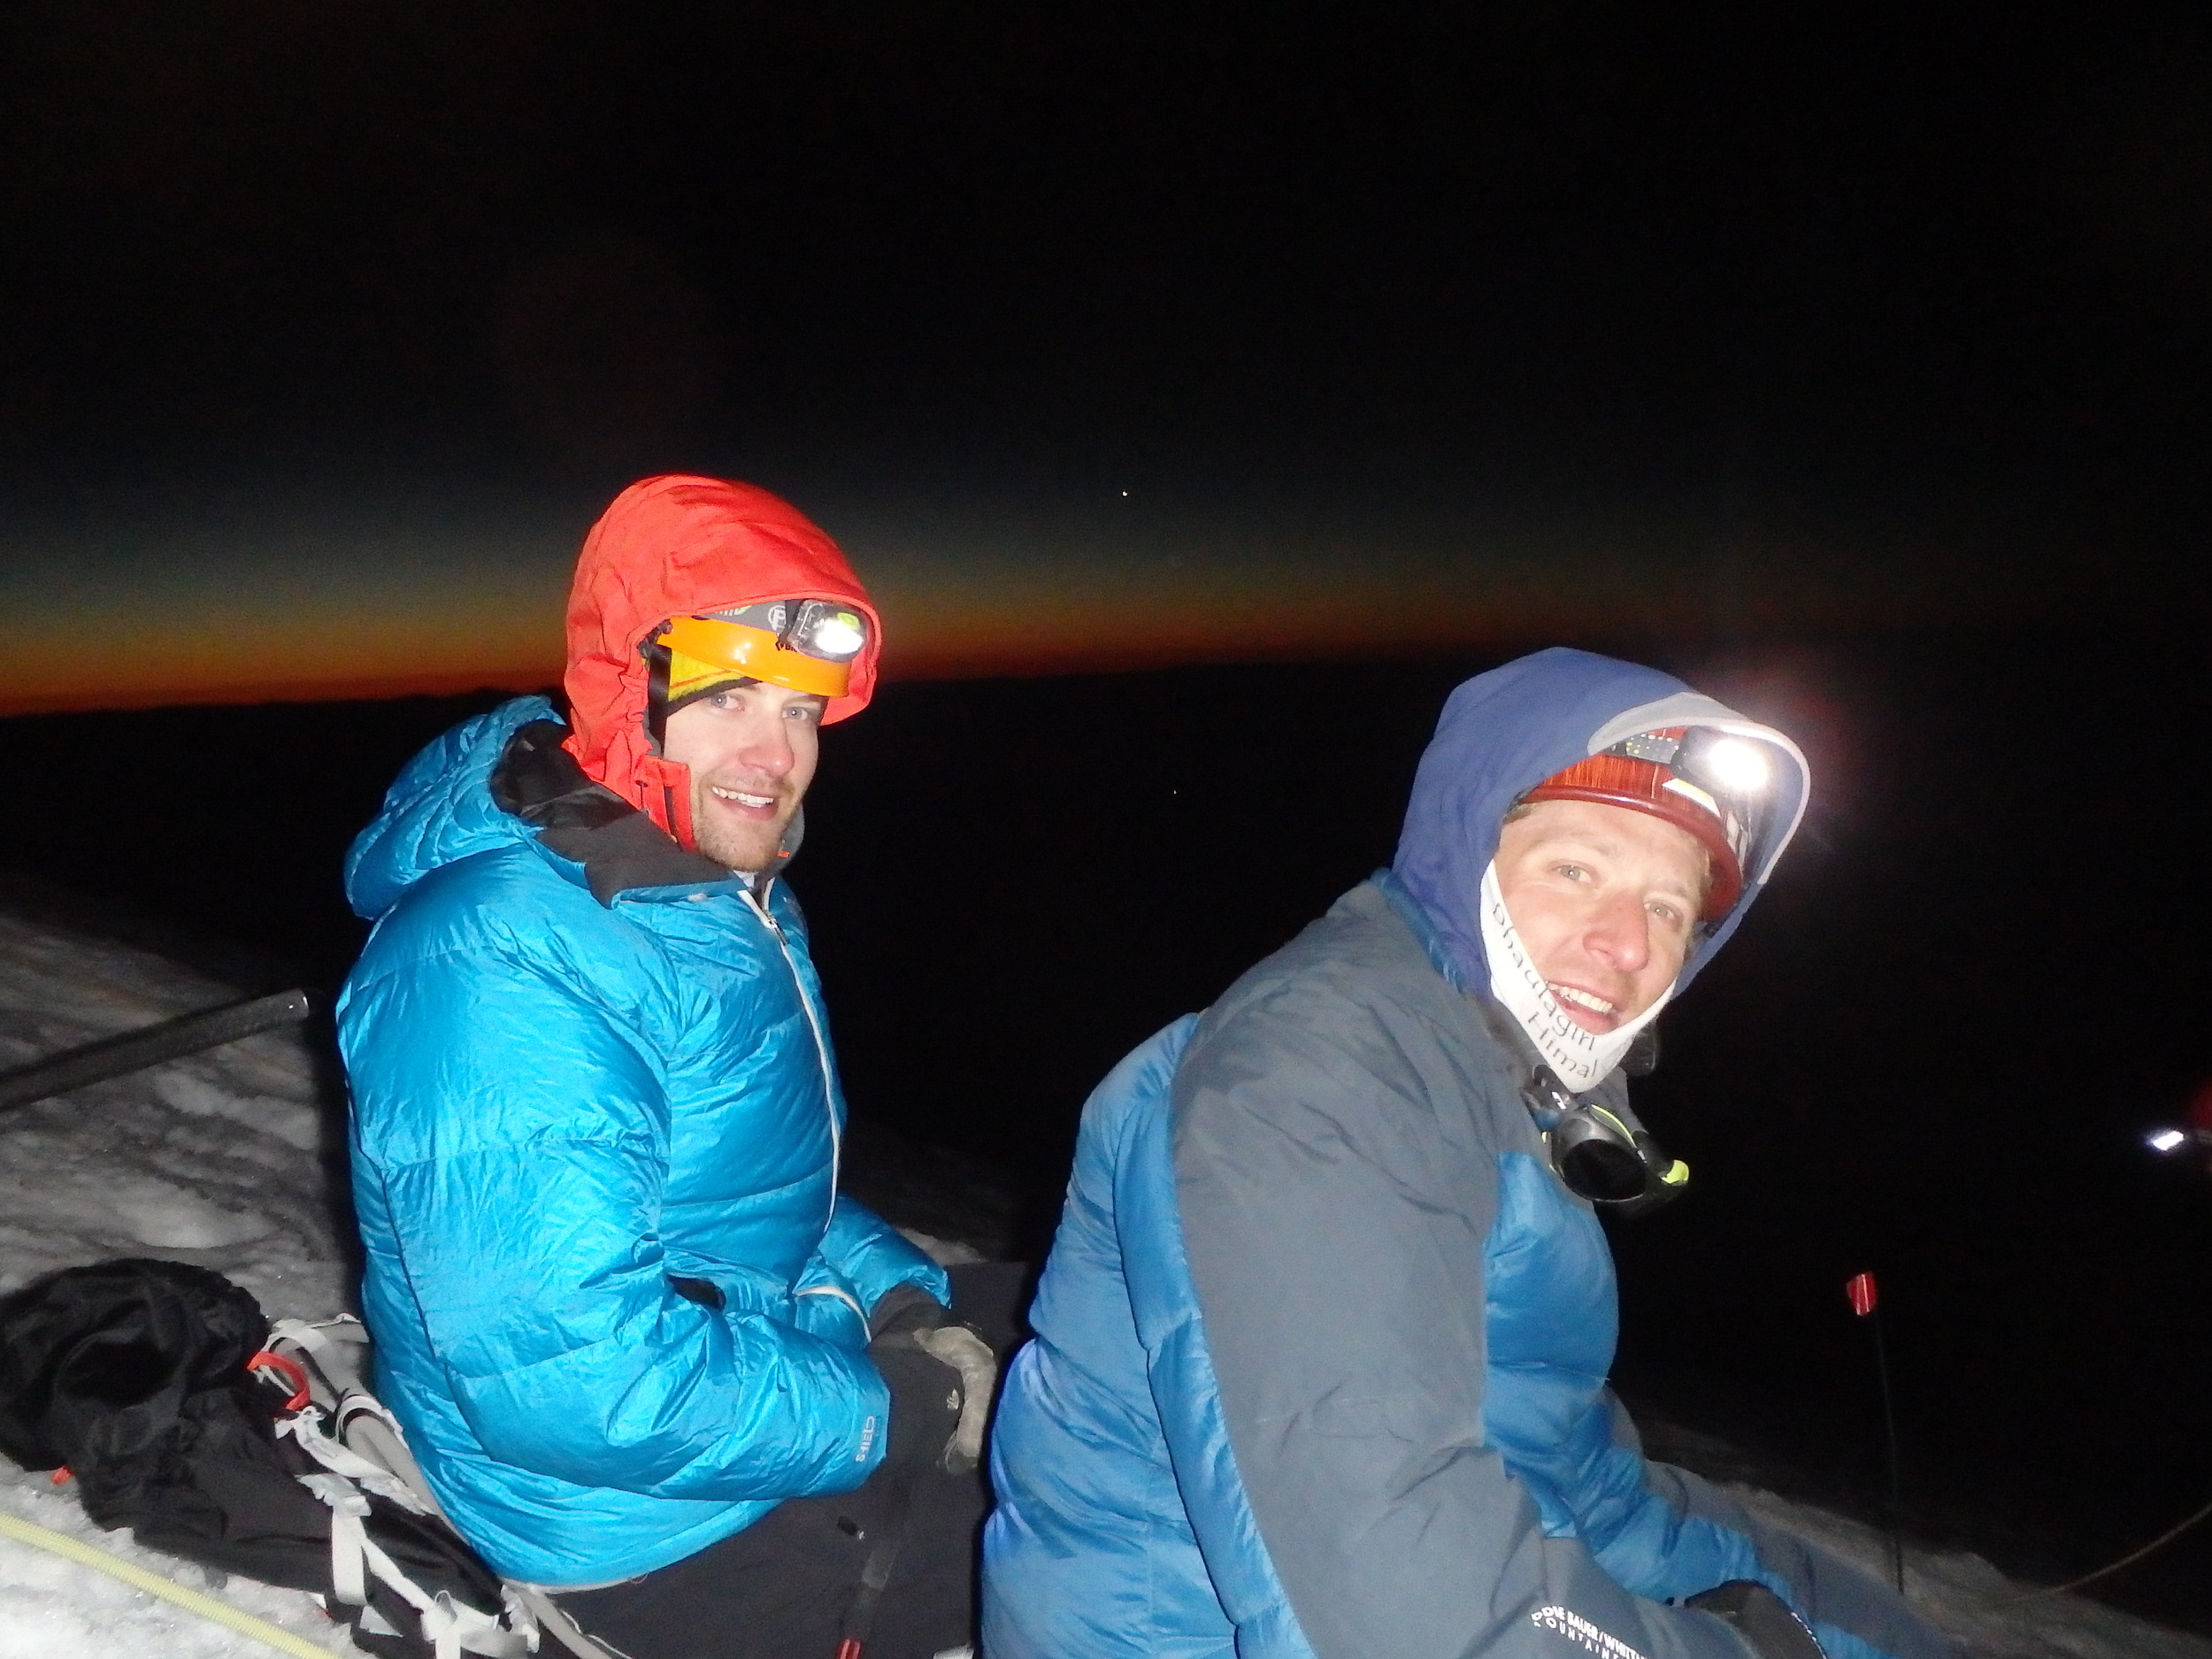 Nick and I on the ascent. The sun rising in the background.